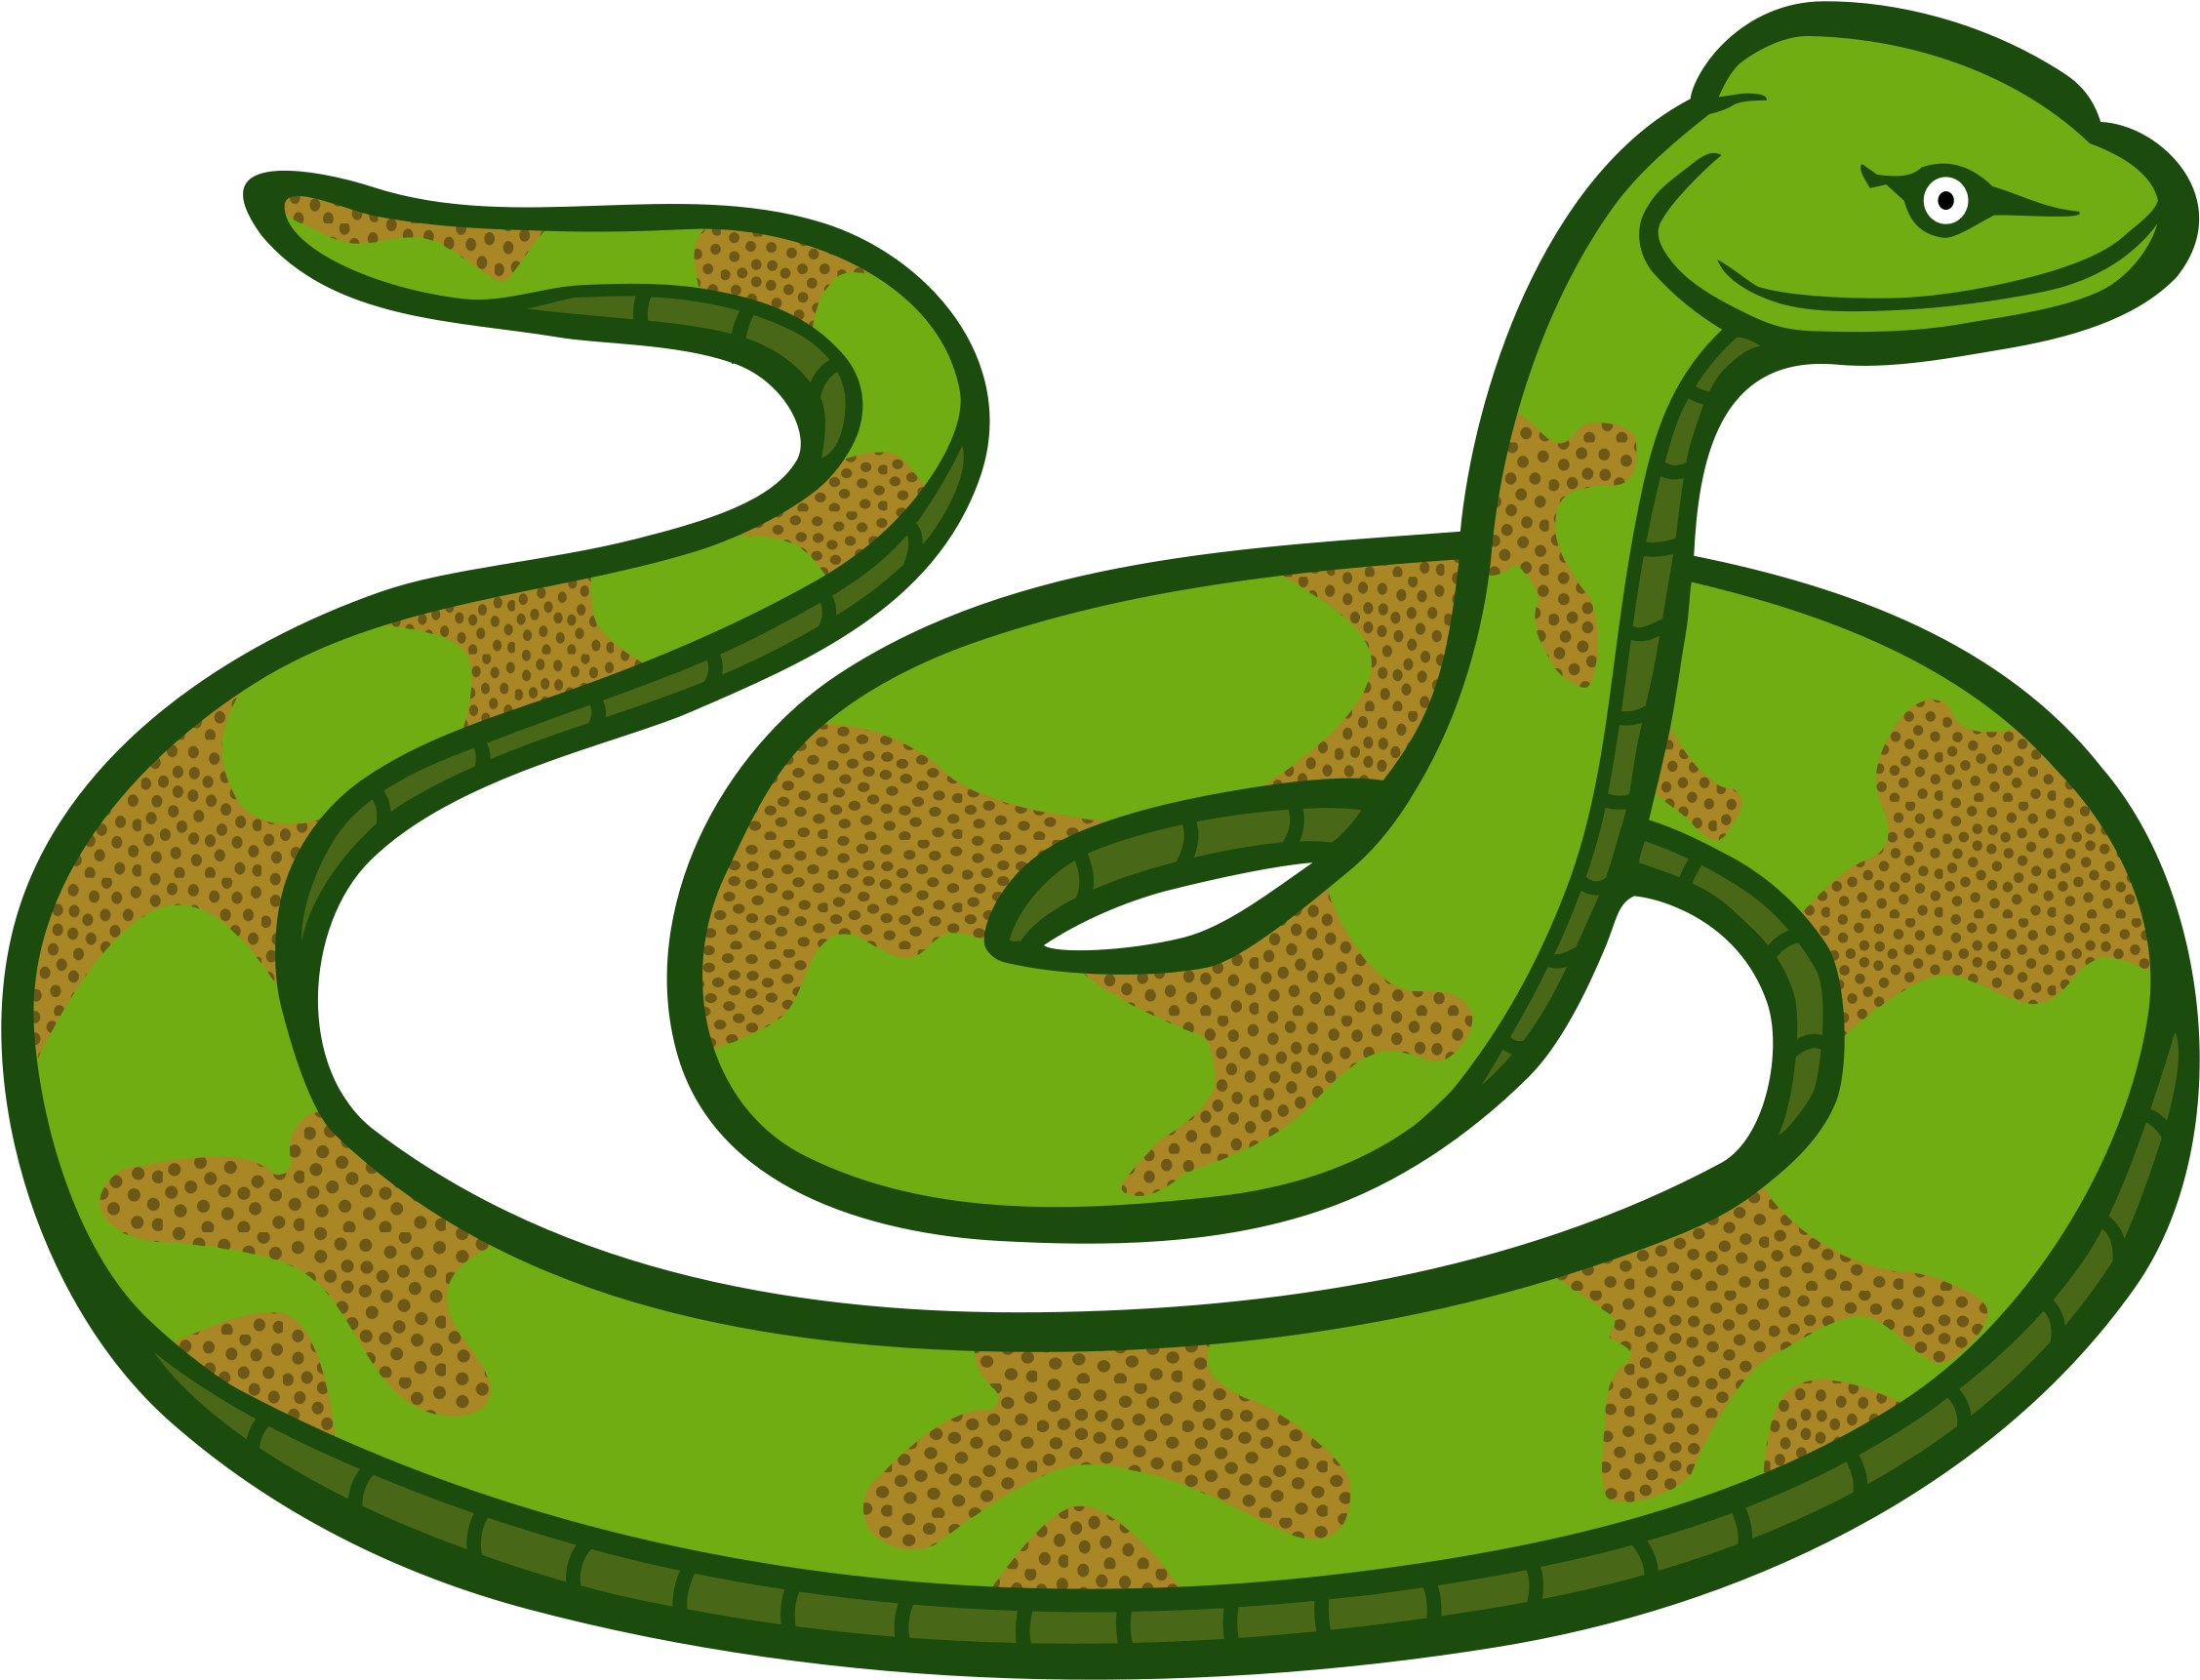 Free cartoon png download. Snake clipart bmp